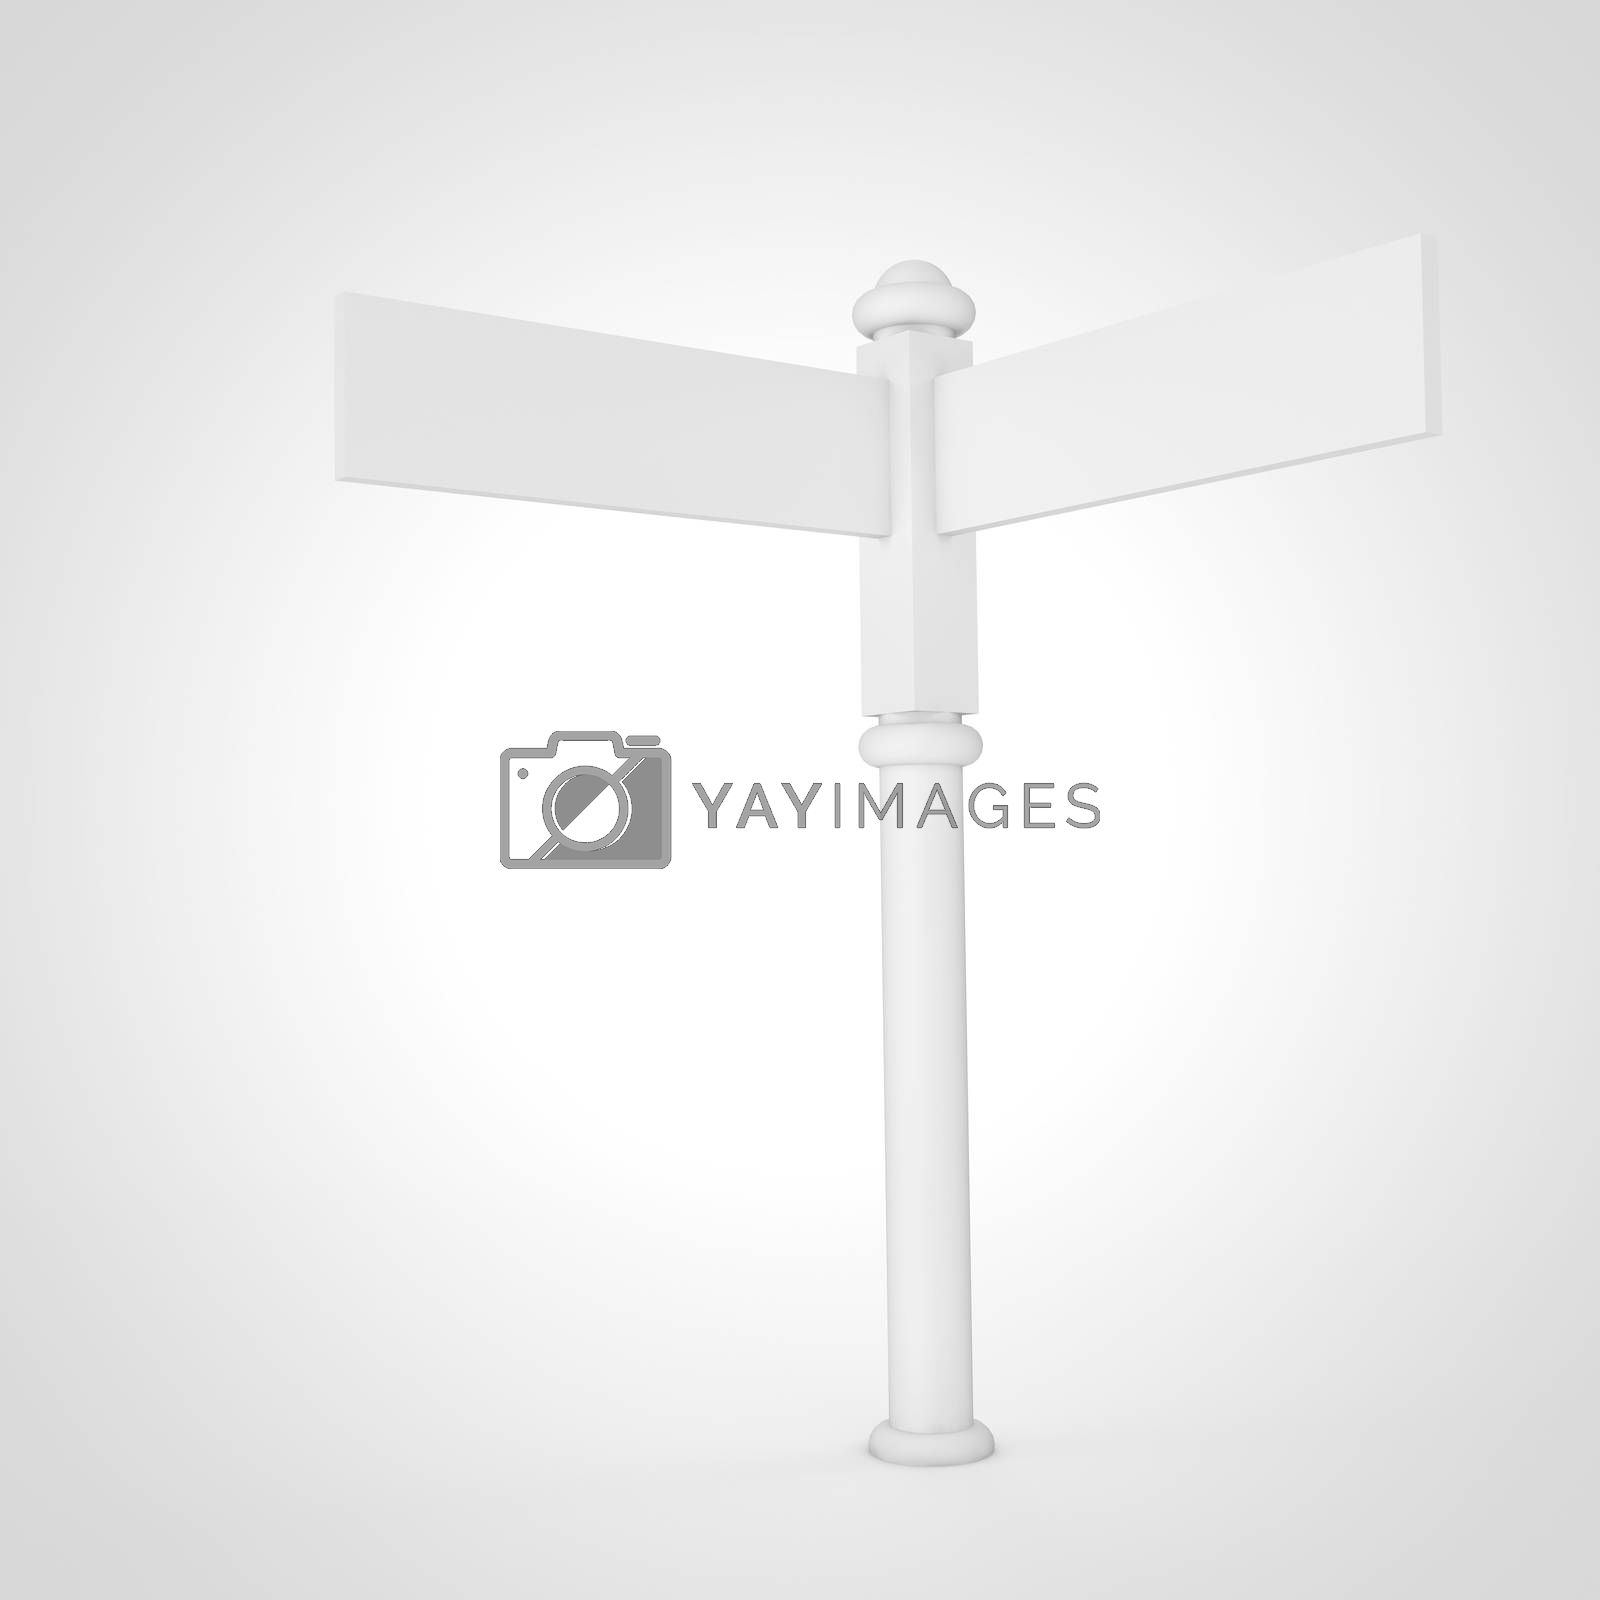 High resolution 3D render of a blank sign post in white.